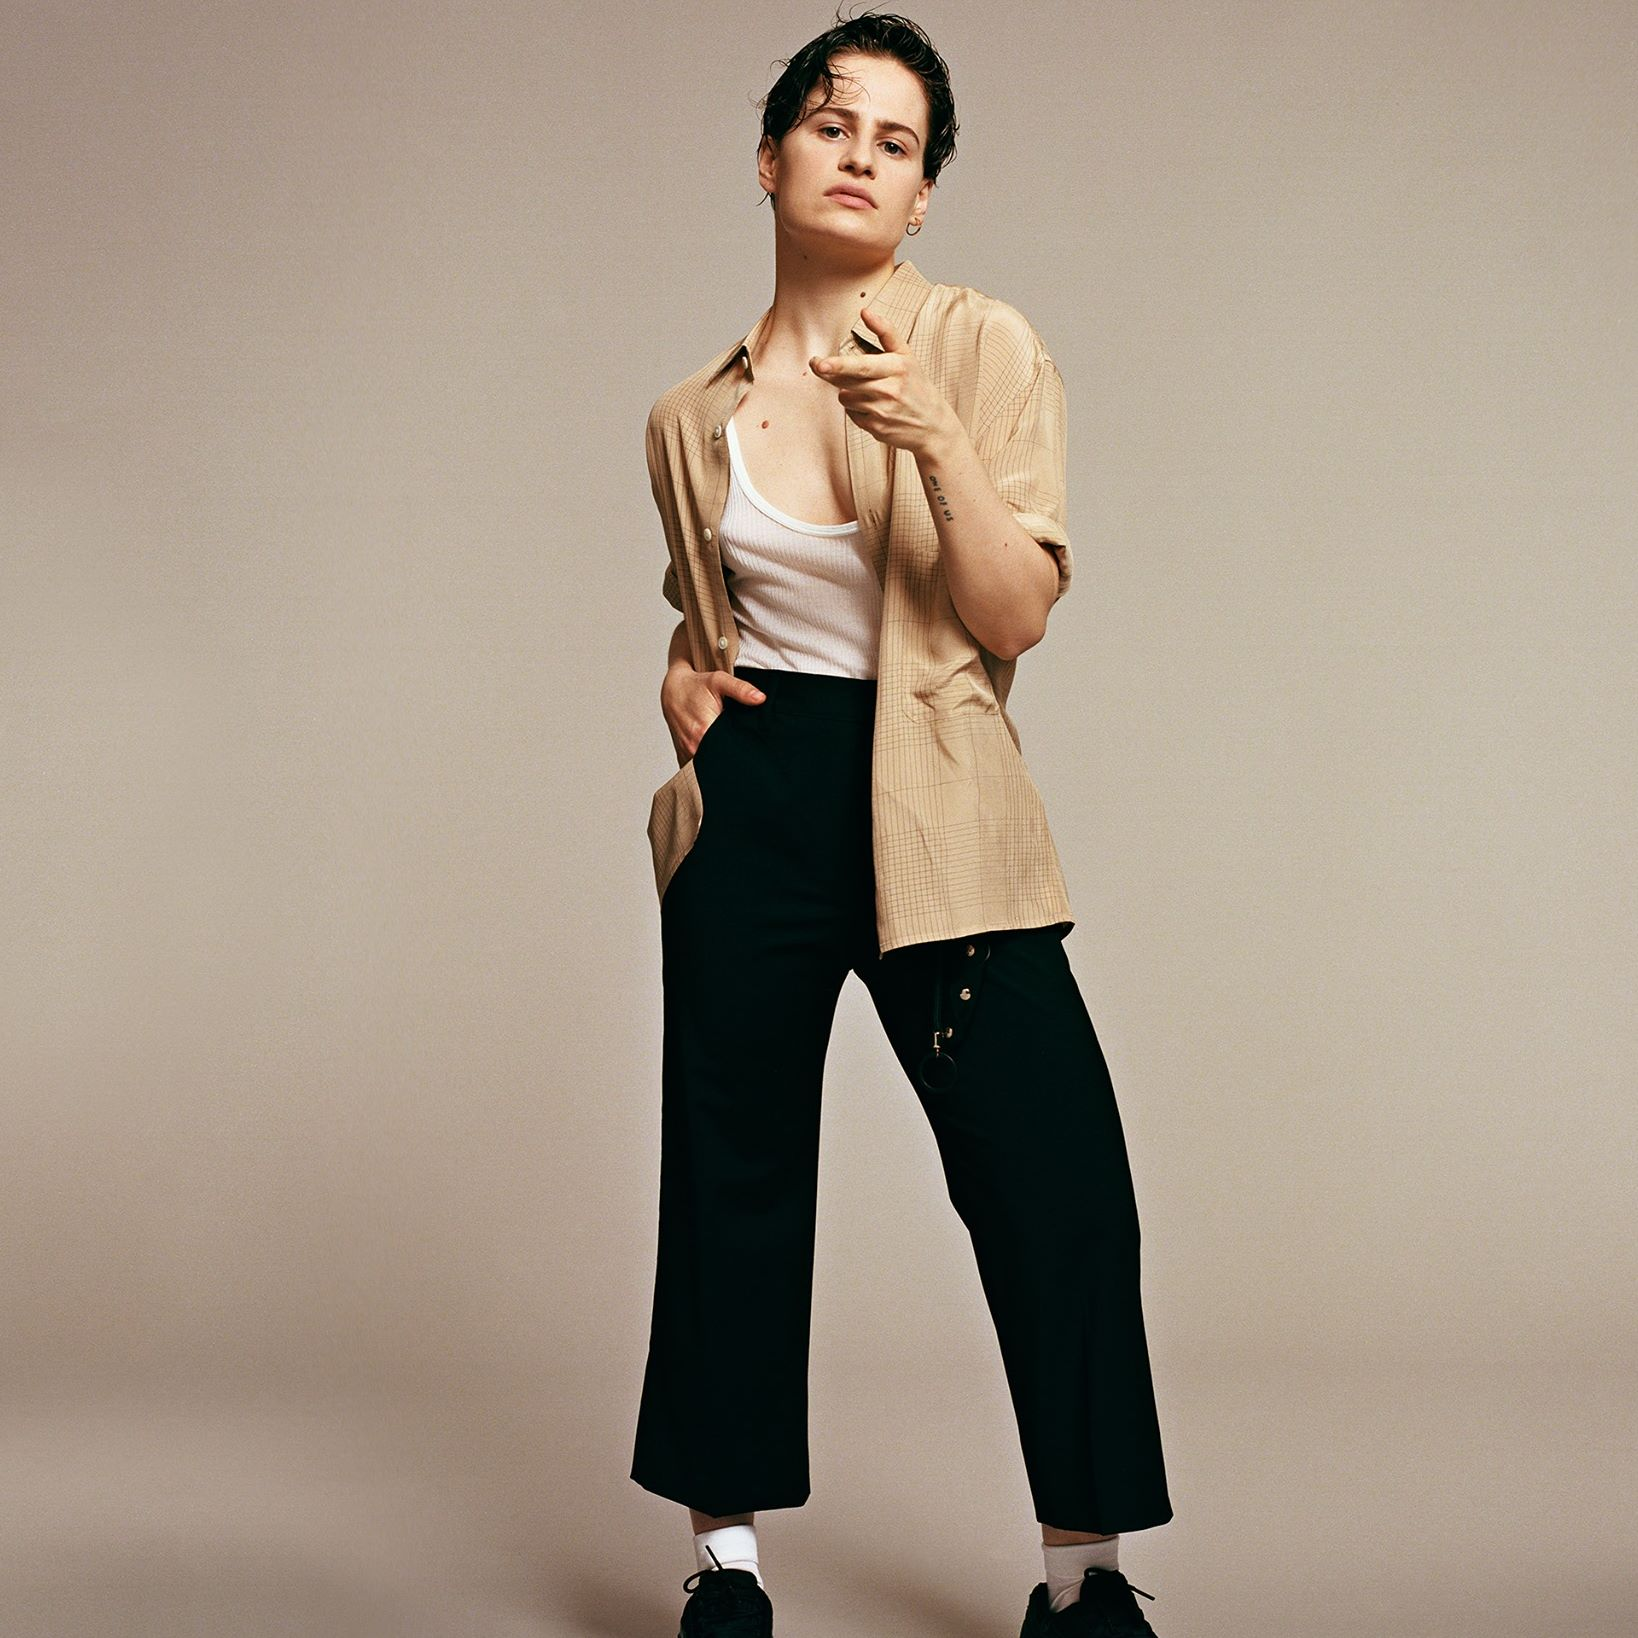 Christine and the Queens Tickets